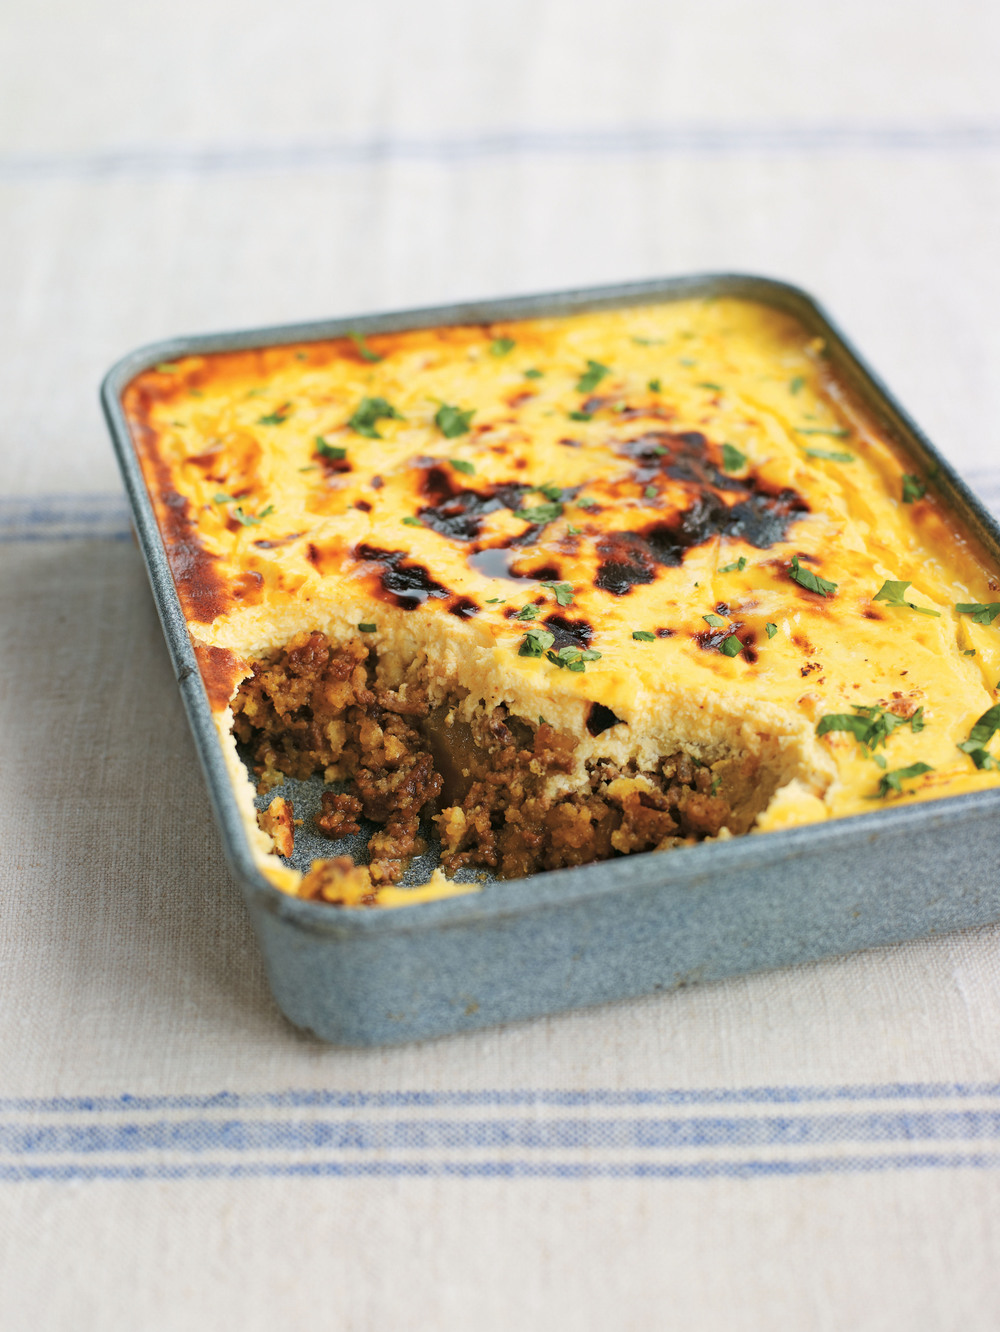 African Curried Beef and Mango Chutney Bake - Aol UK | Food